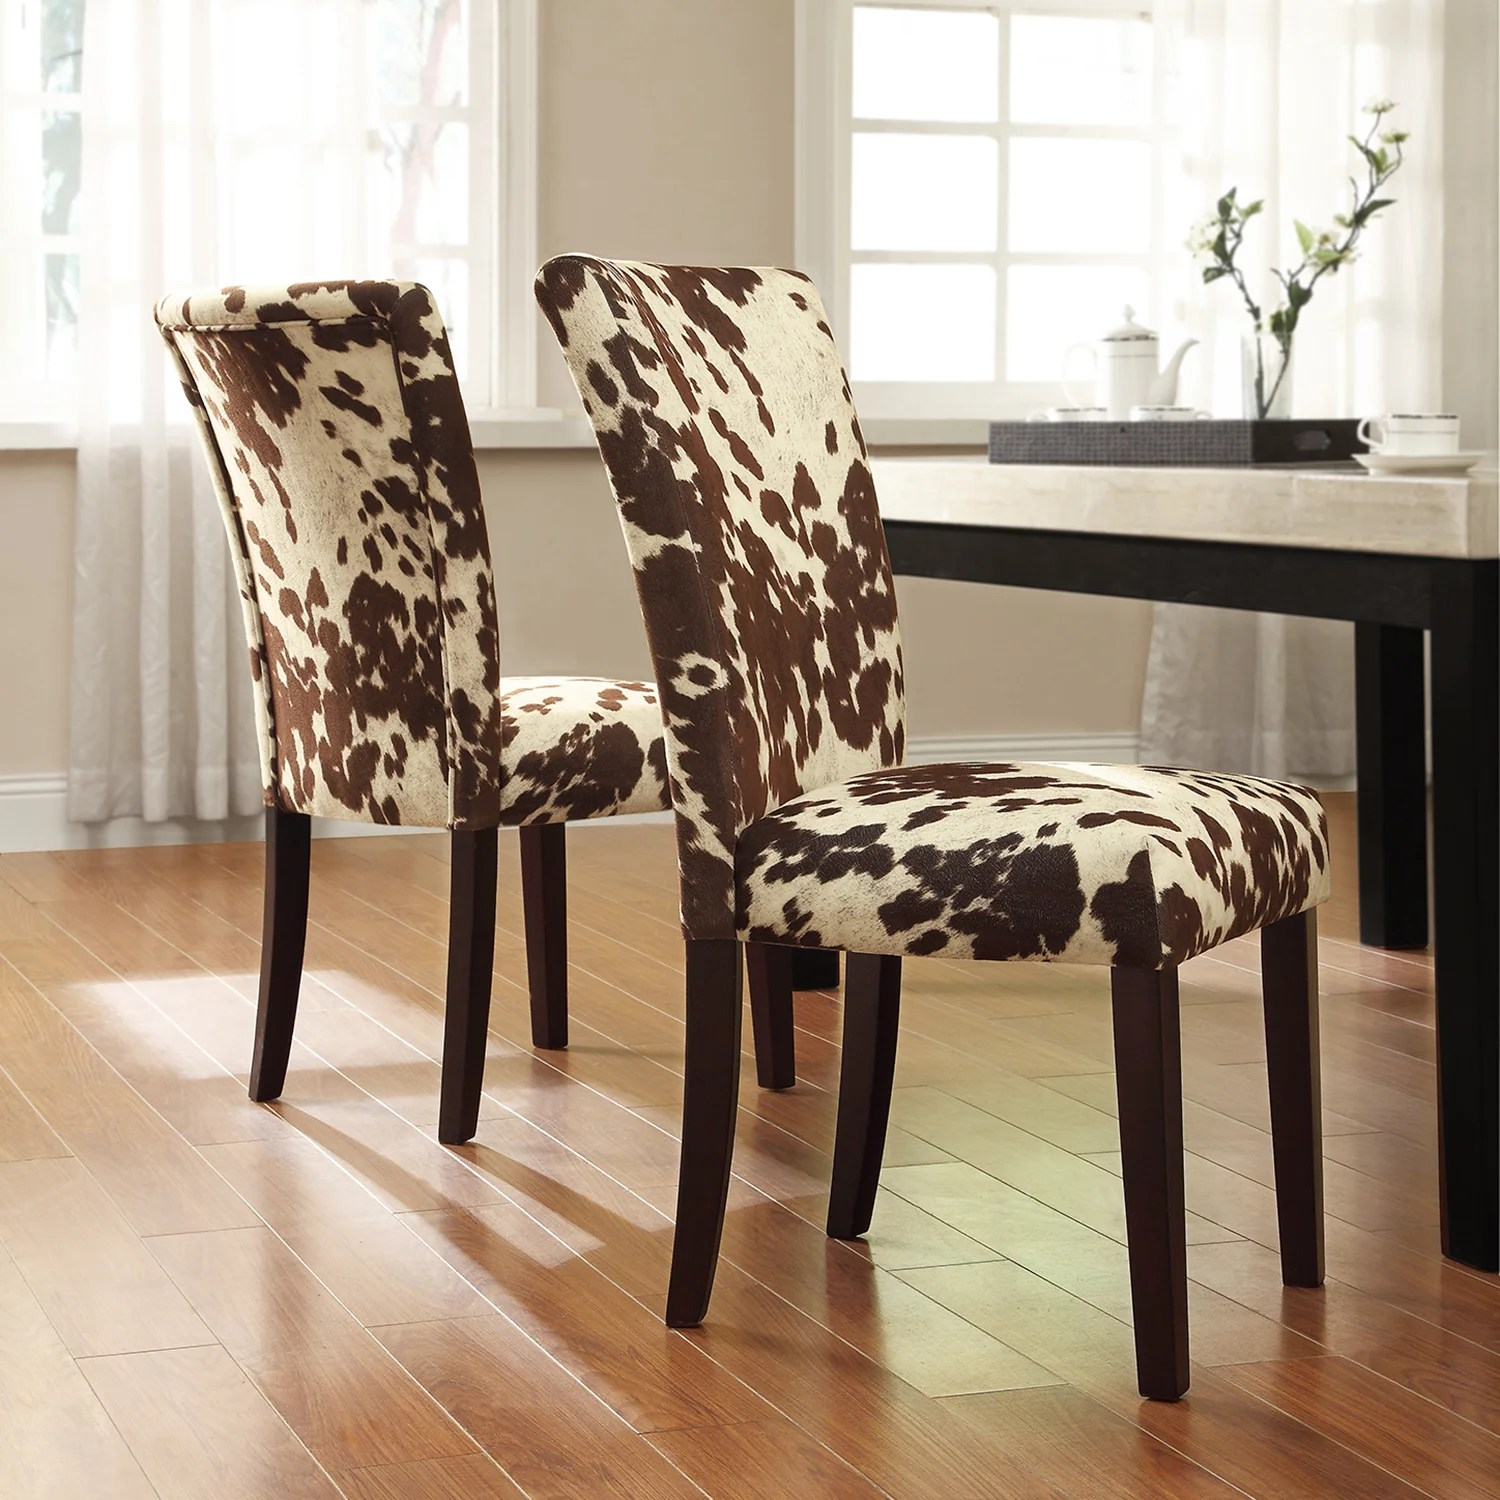 Cow Hide Chair Details About Portman Cow Hide Parson Dining Chairs Set Of 2 By Inspire Q Bold